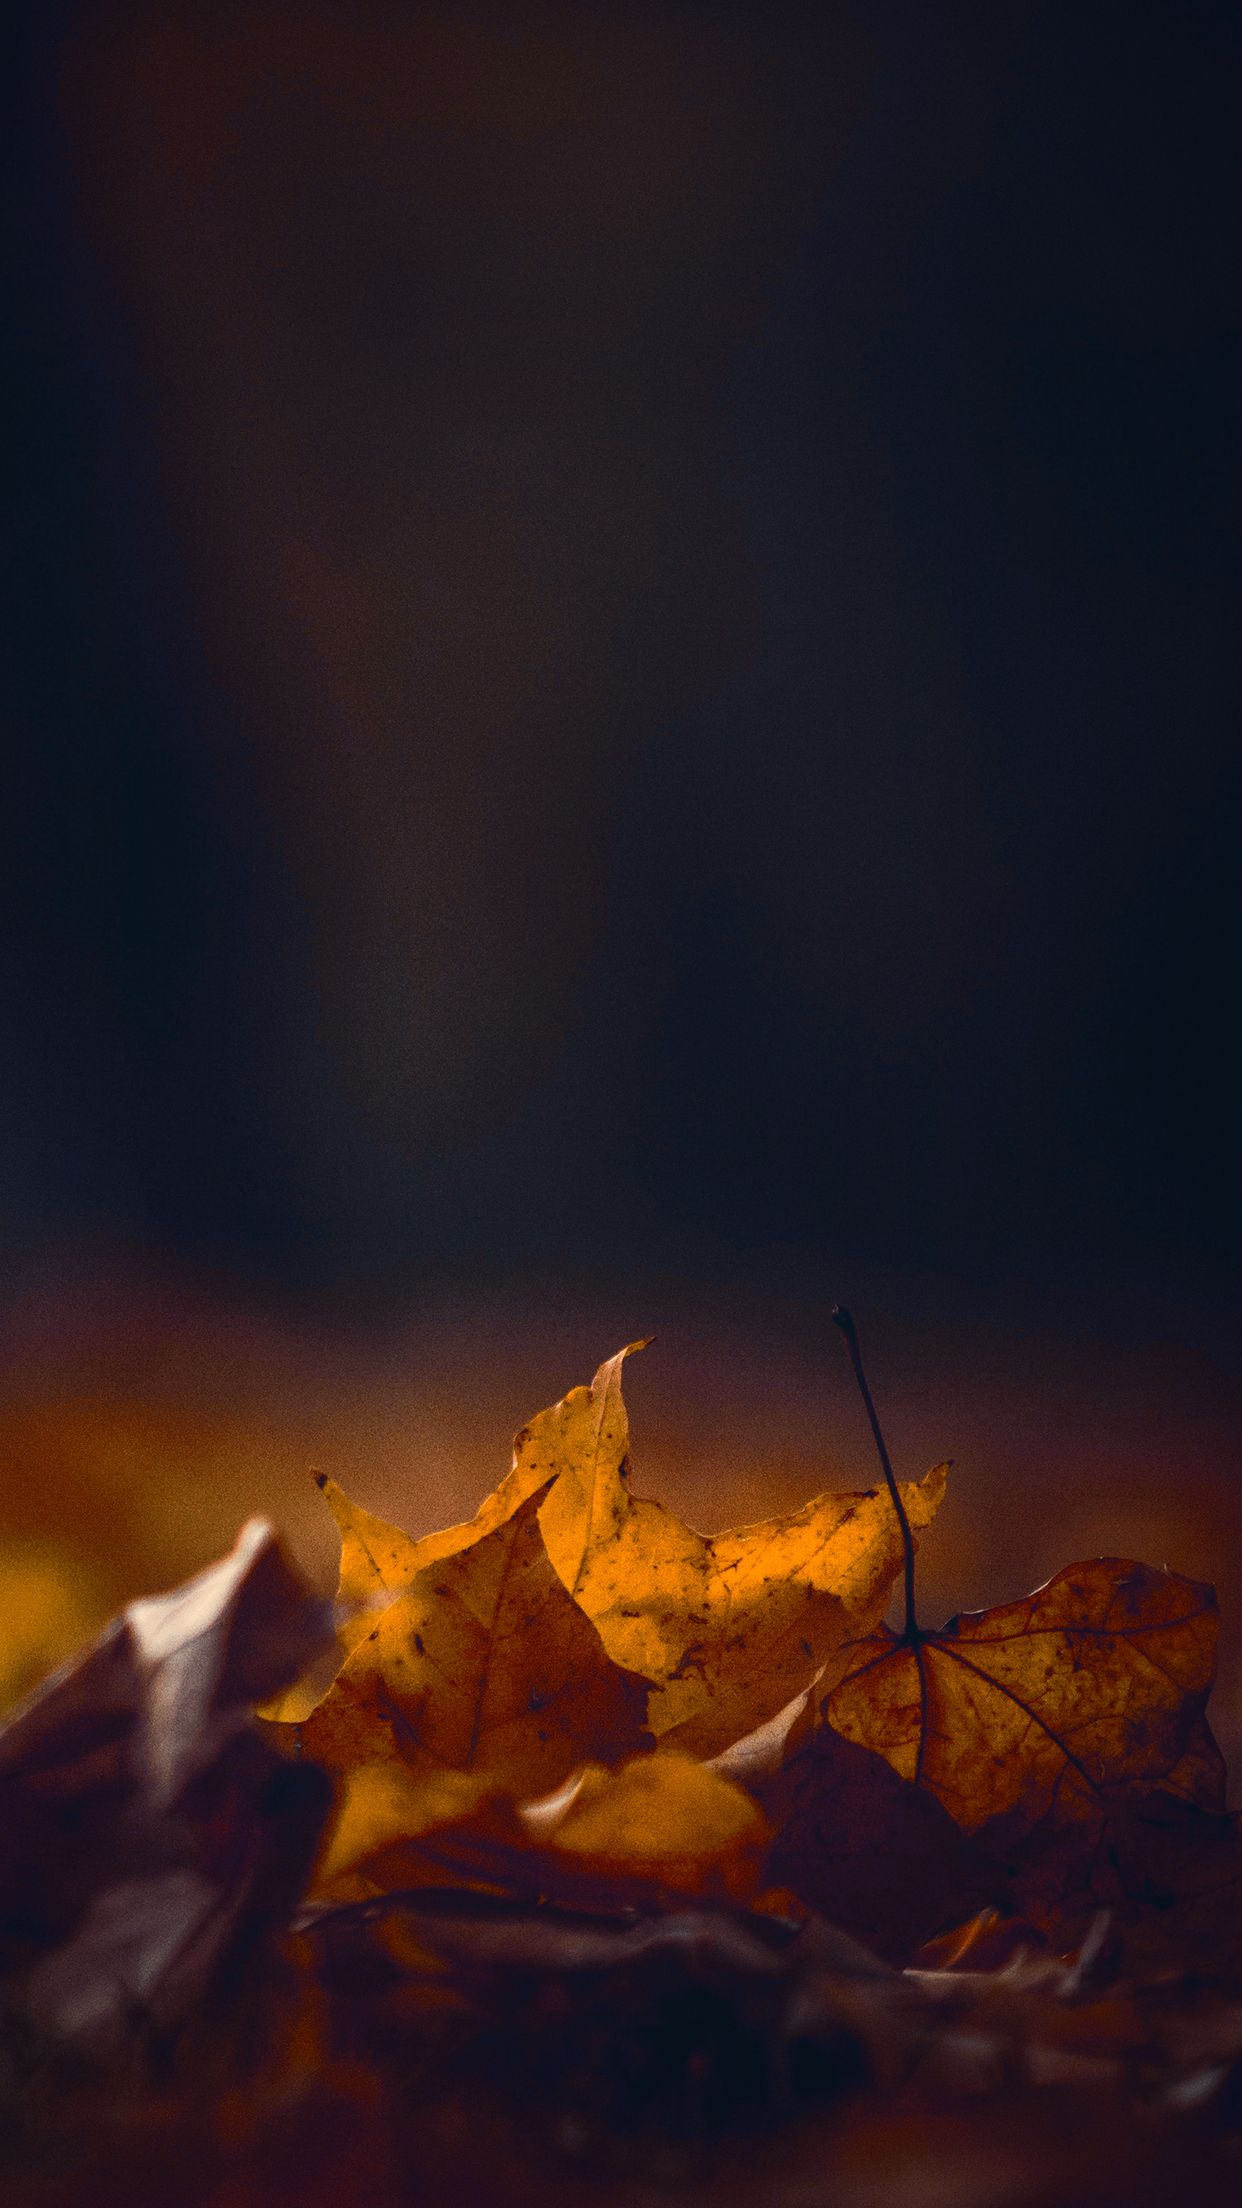 Hd Autumn Wallpaper For Your Phone Iphone Backgrounds Nature Phone Wallpaper Phone Wallpapers Tumblr